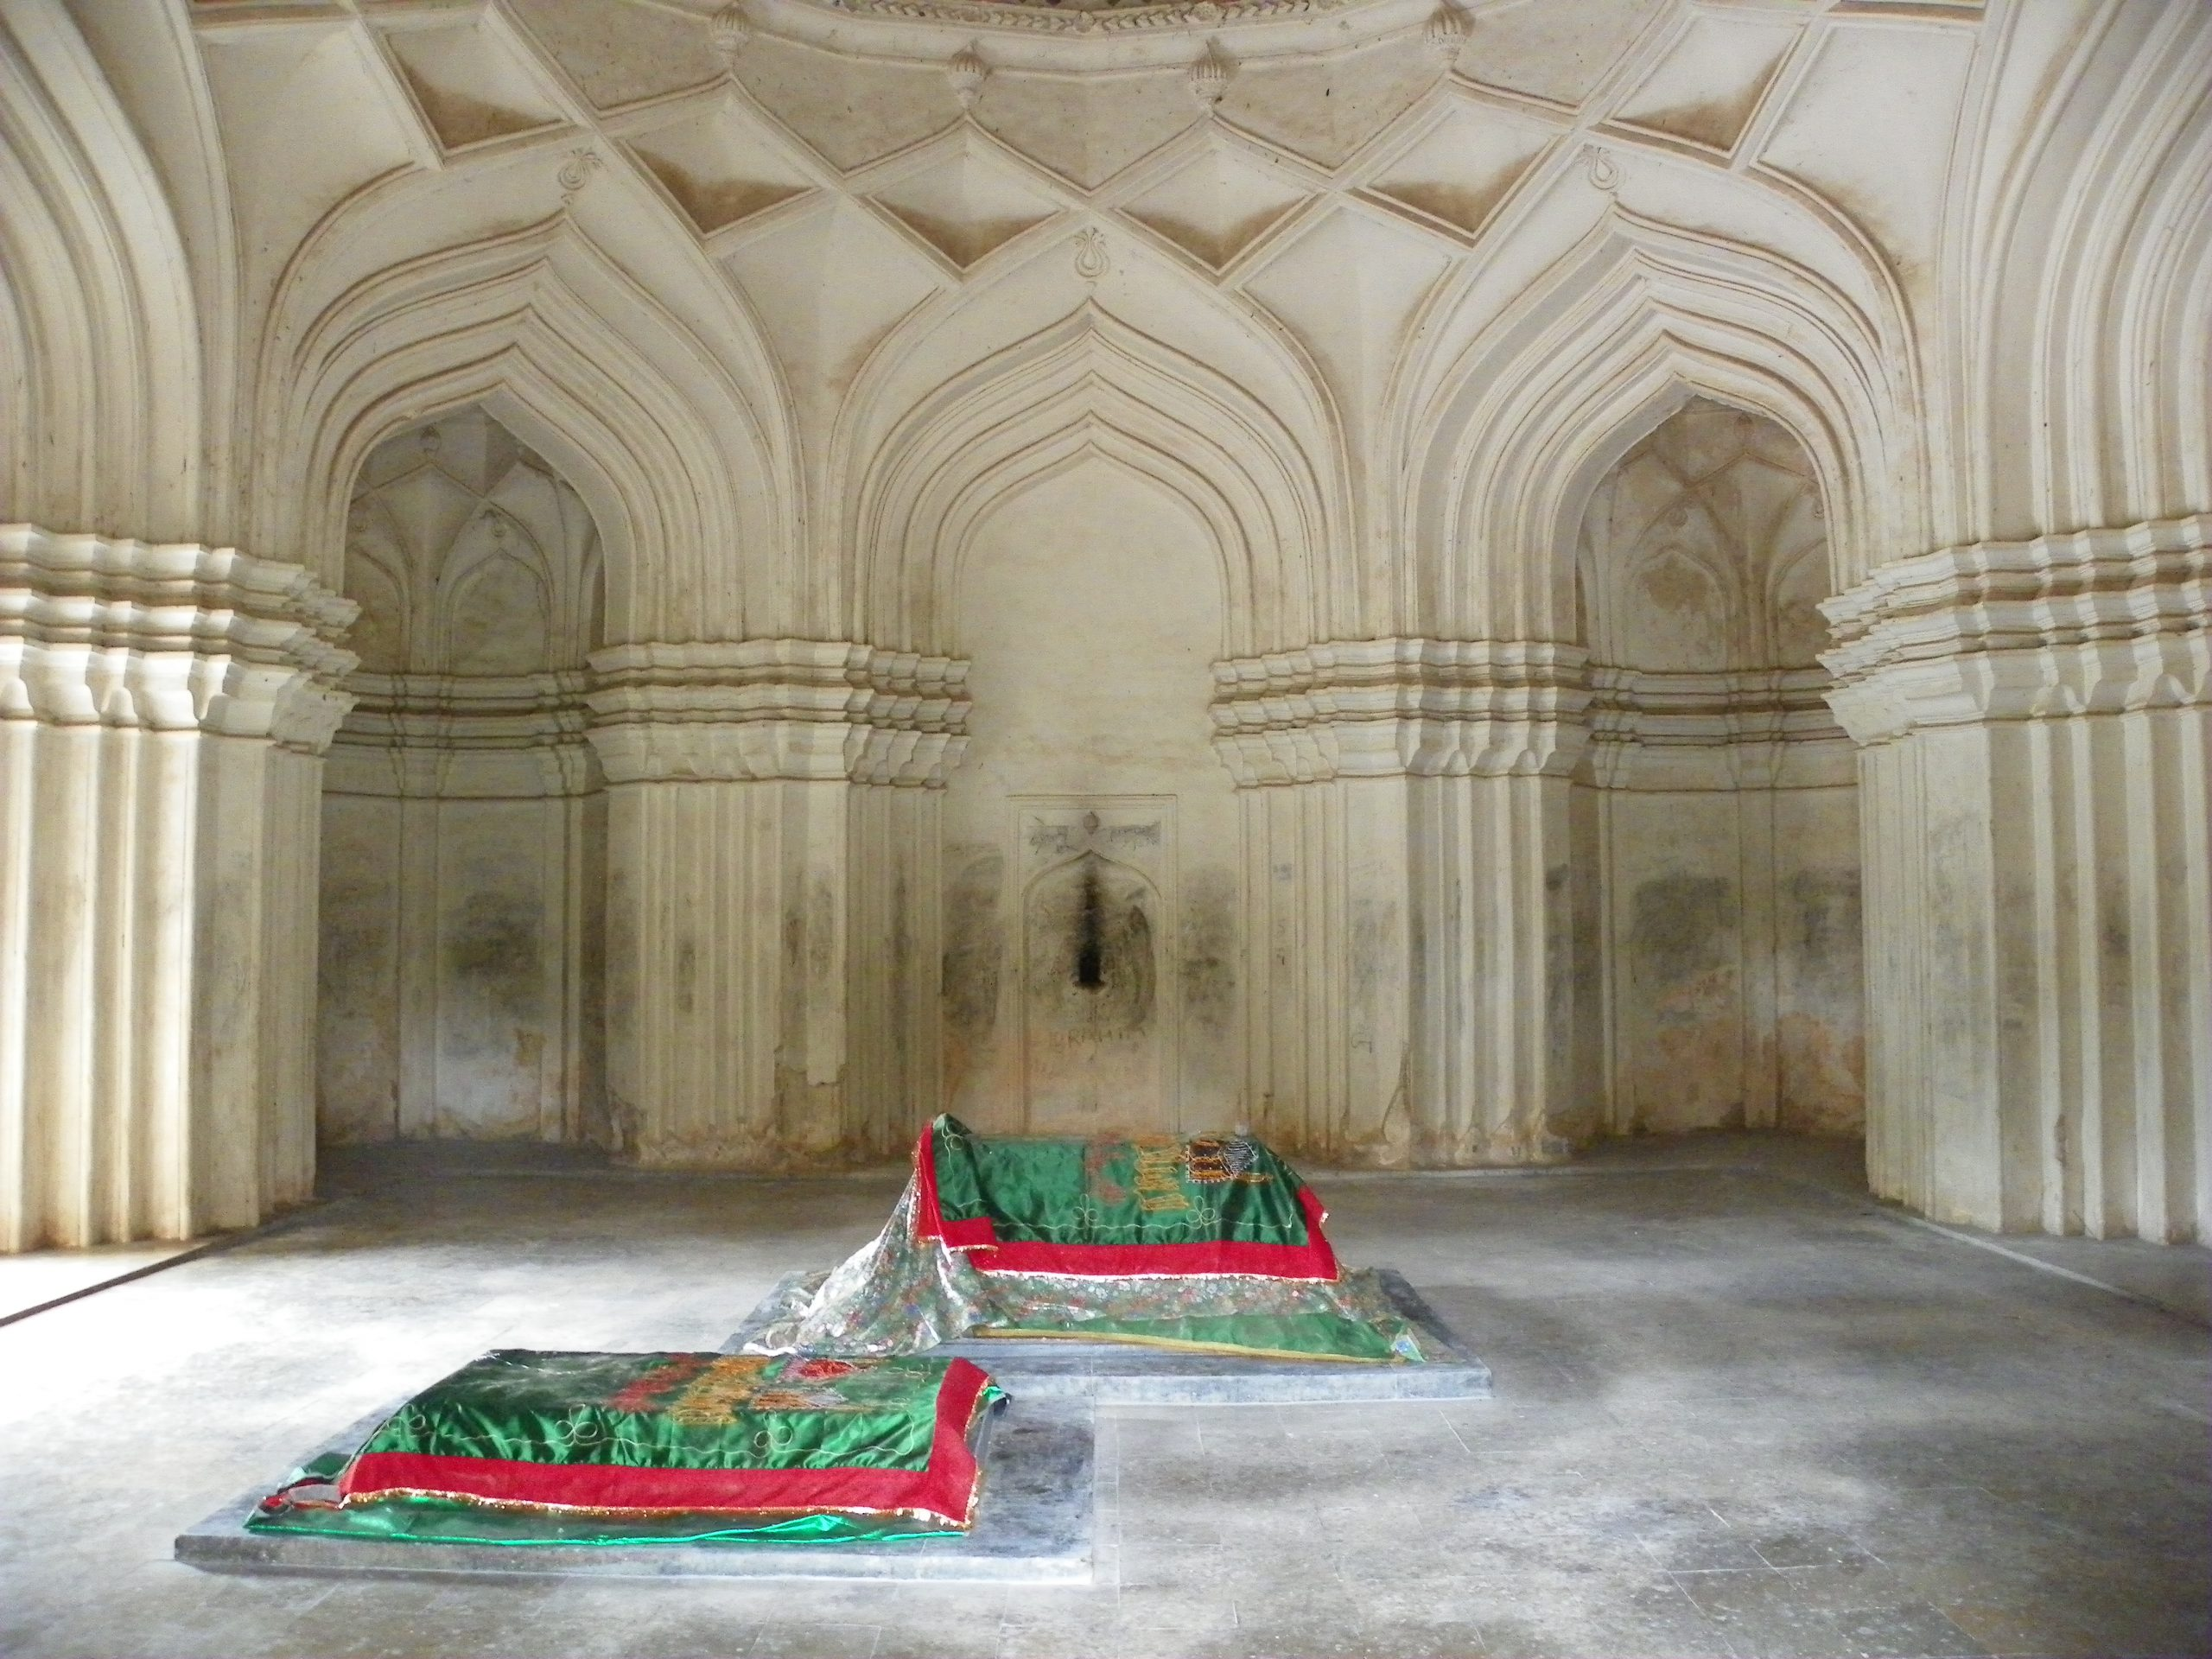 Architecture of Qutub Shahi Tombs